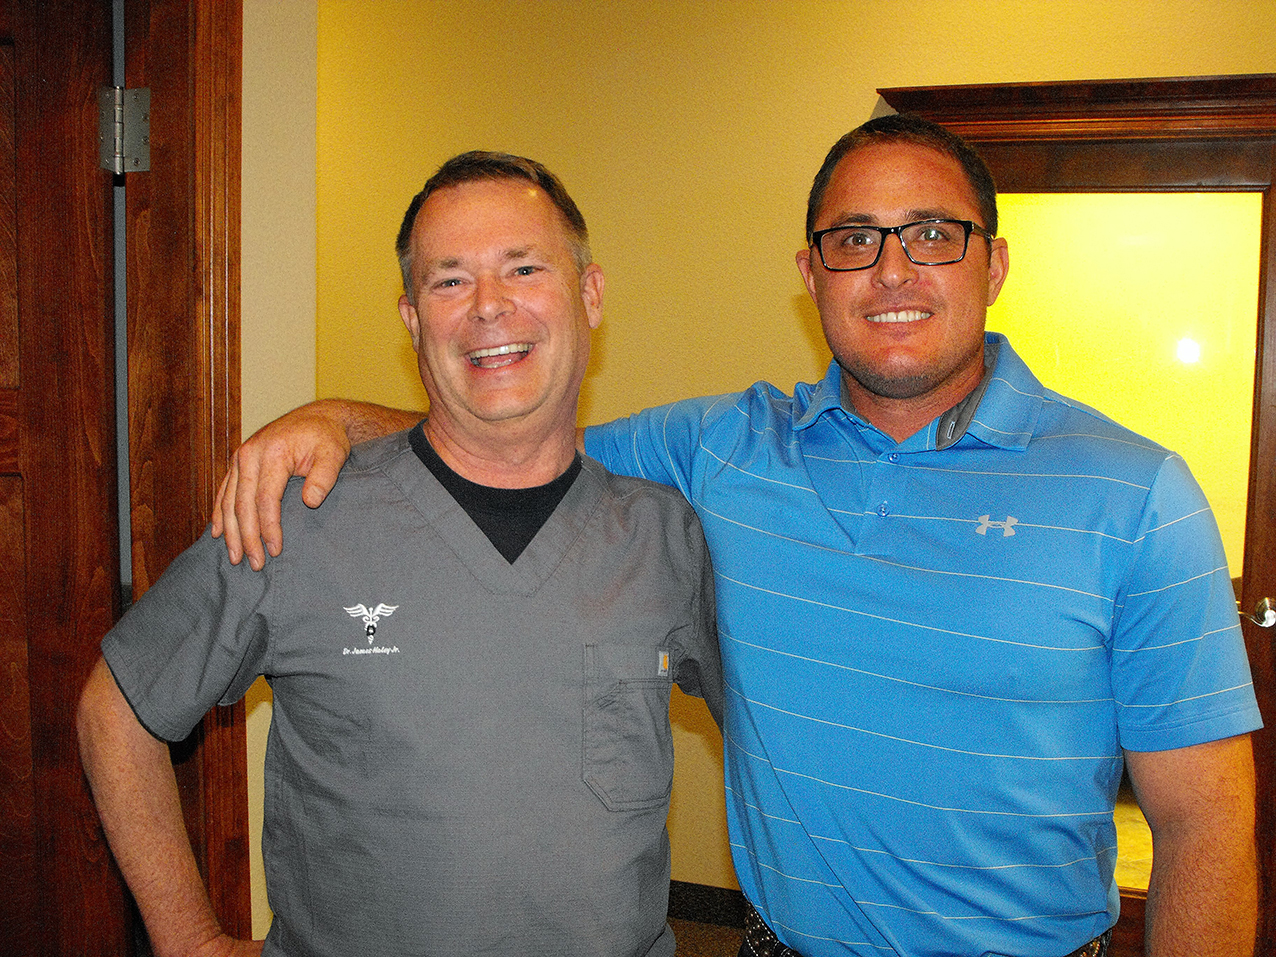 Chamber Mix at Haley Dental Office 3 Dr. Haley and Dr. Navarro